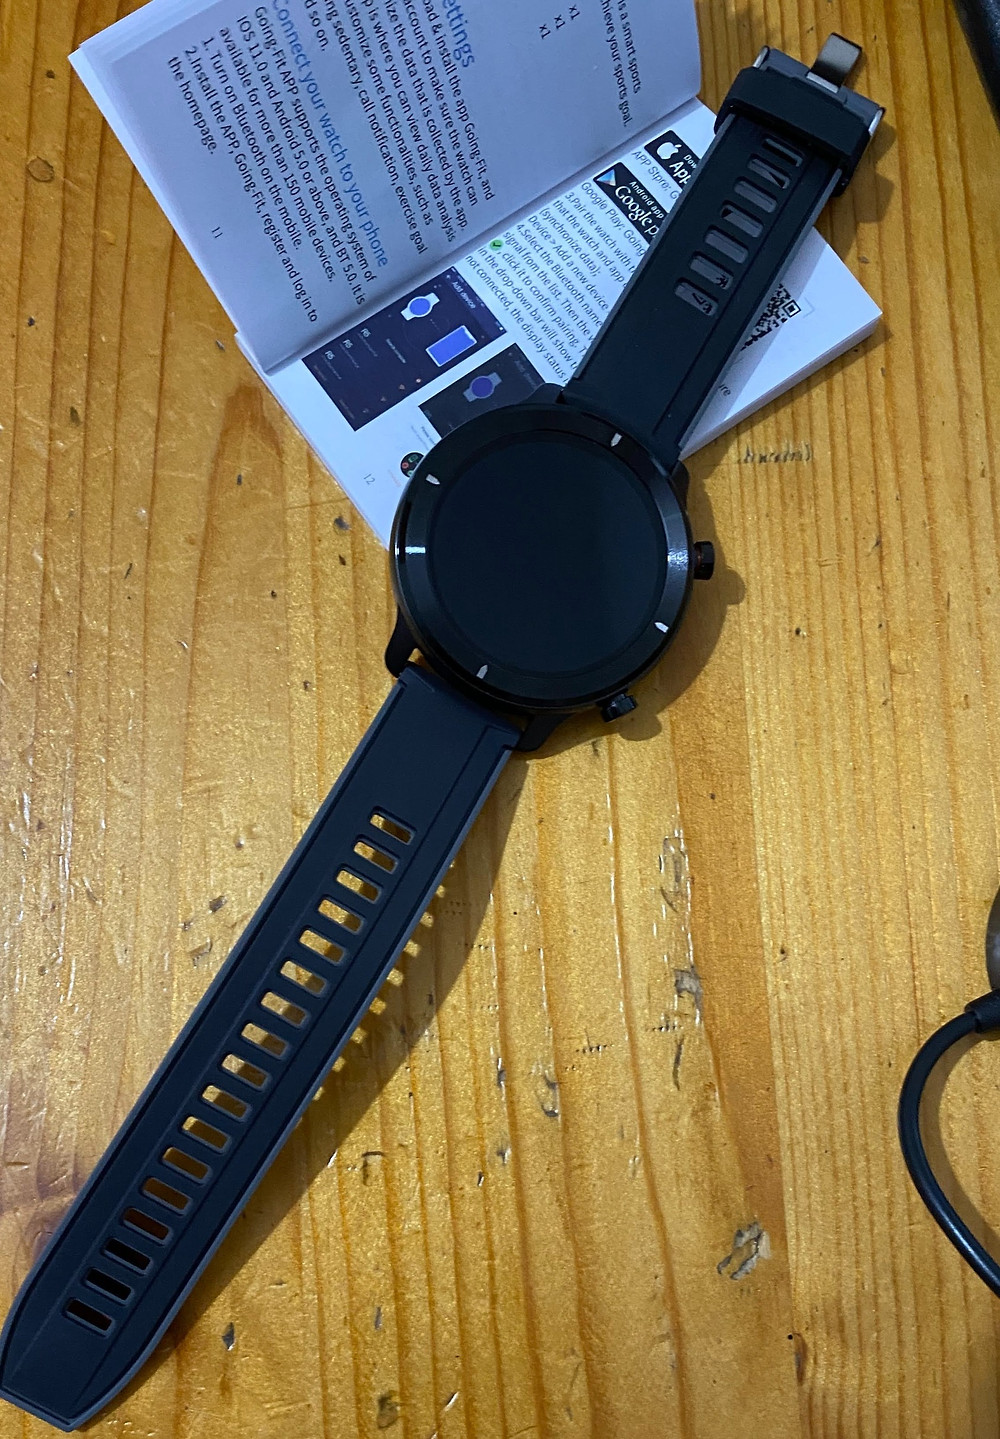 Gandley R4 Smartwatch - Worth it or Not | Tech-Knowledge